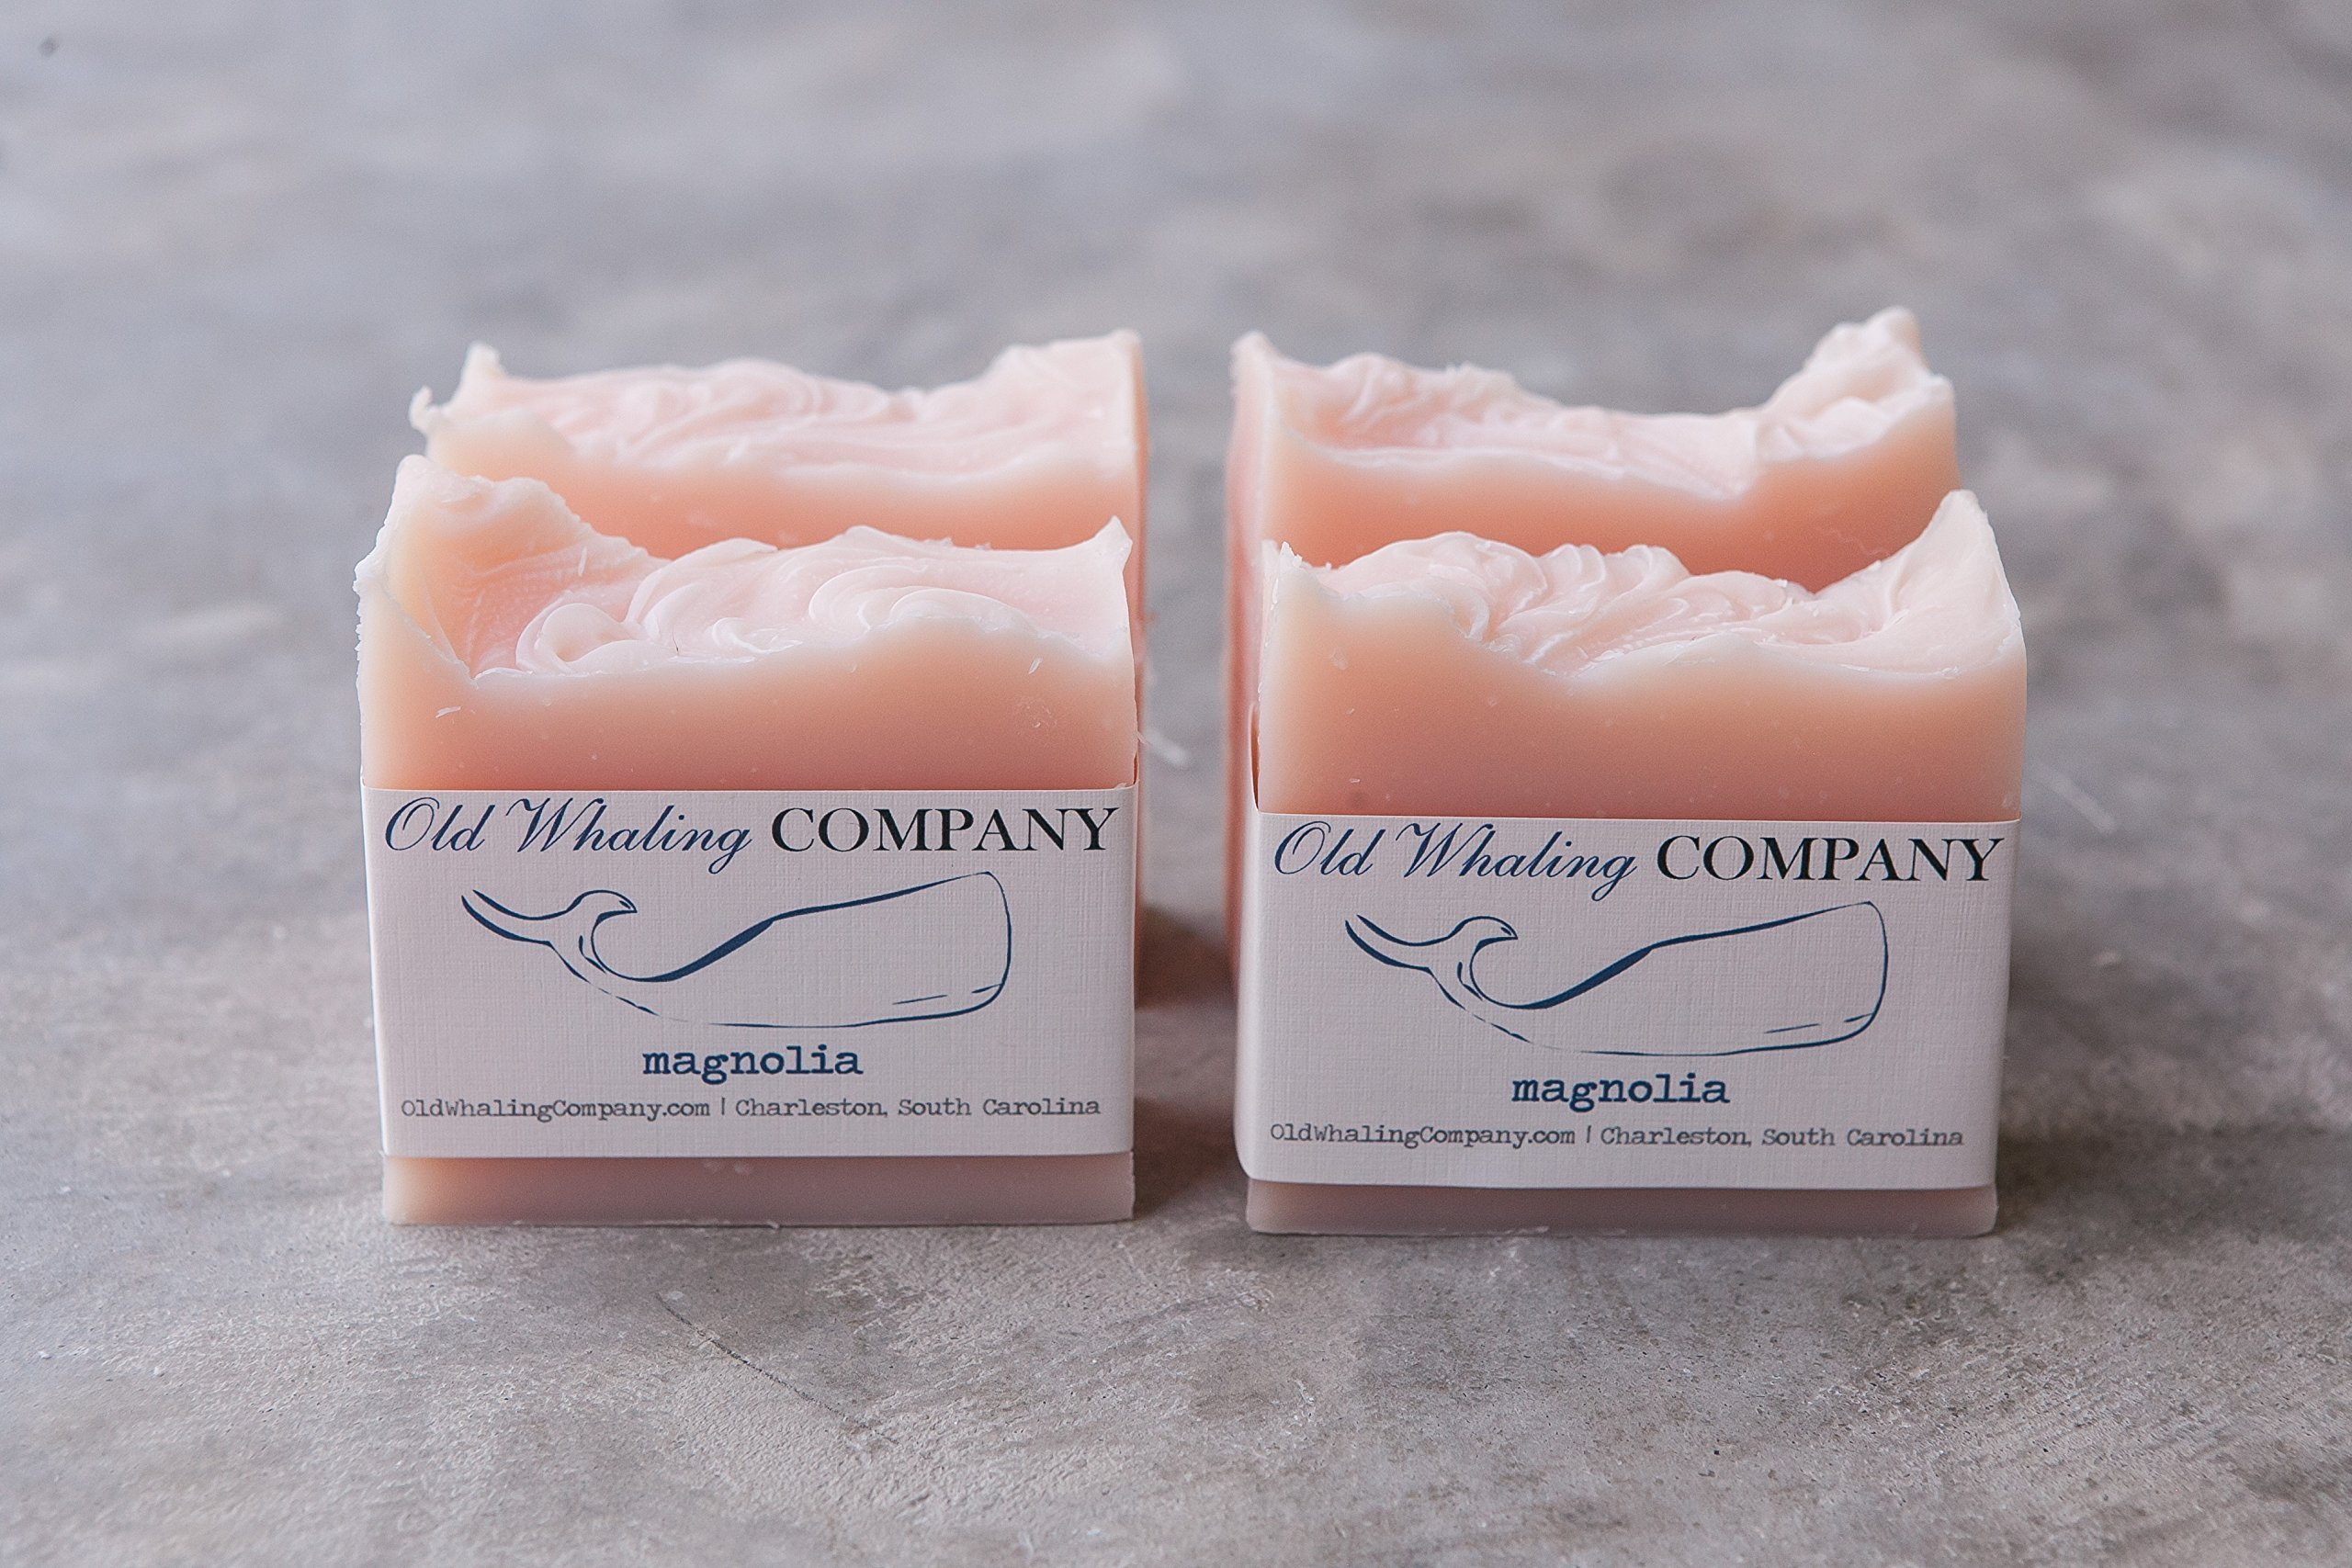 FOUR Magnolia Bar Soap || southern magnolia / pink bar soap / natural bar soap / handmade bar soap / cold process soap / southern favorite